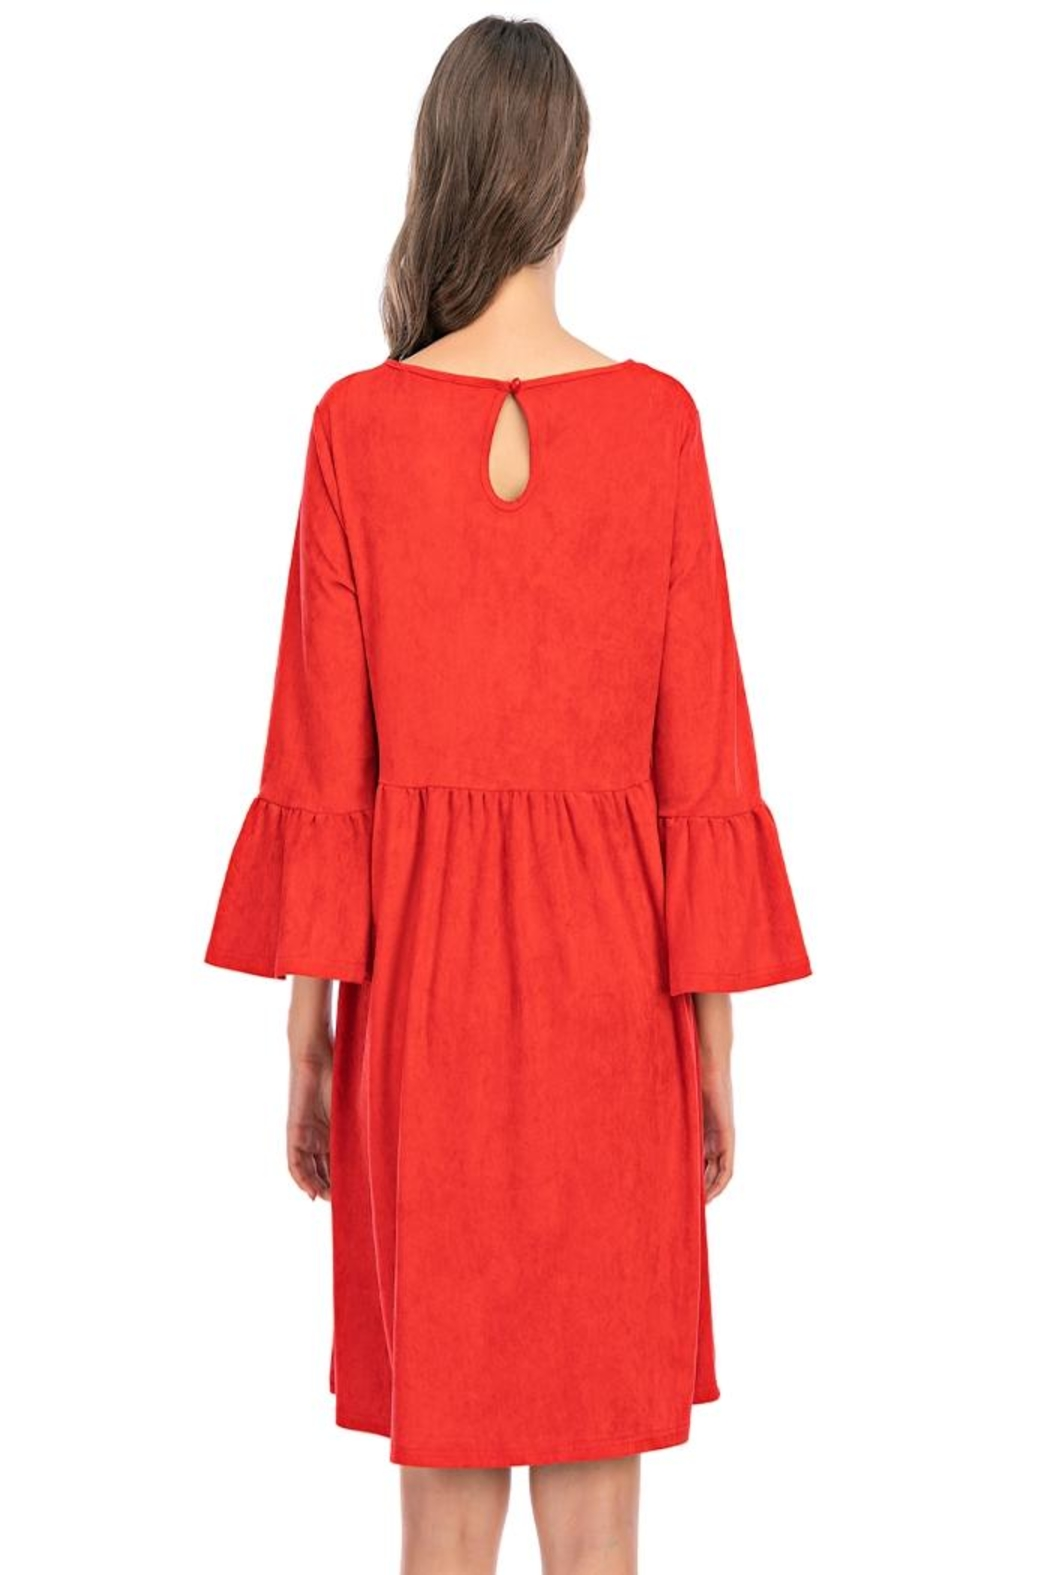 Aryeh Red Bell Sleeve Dress - Back Cropped Image